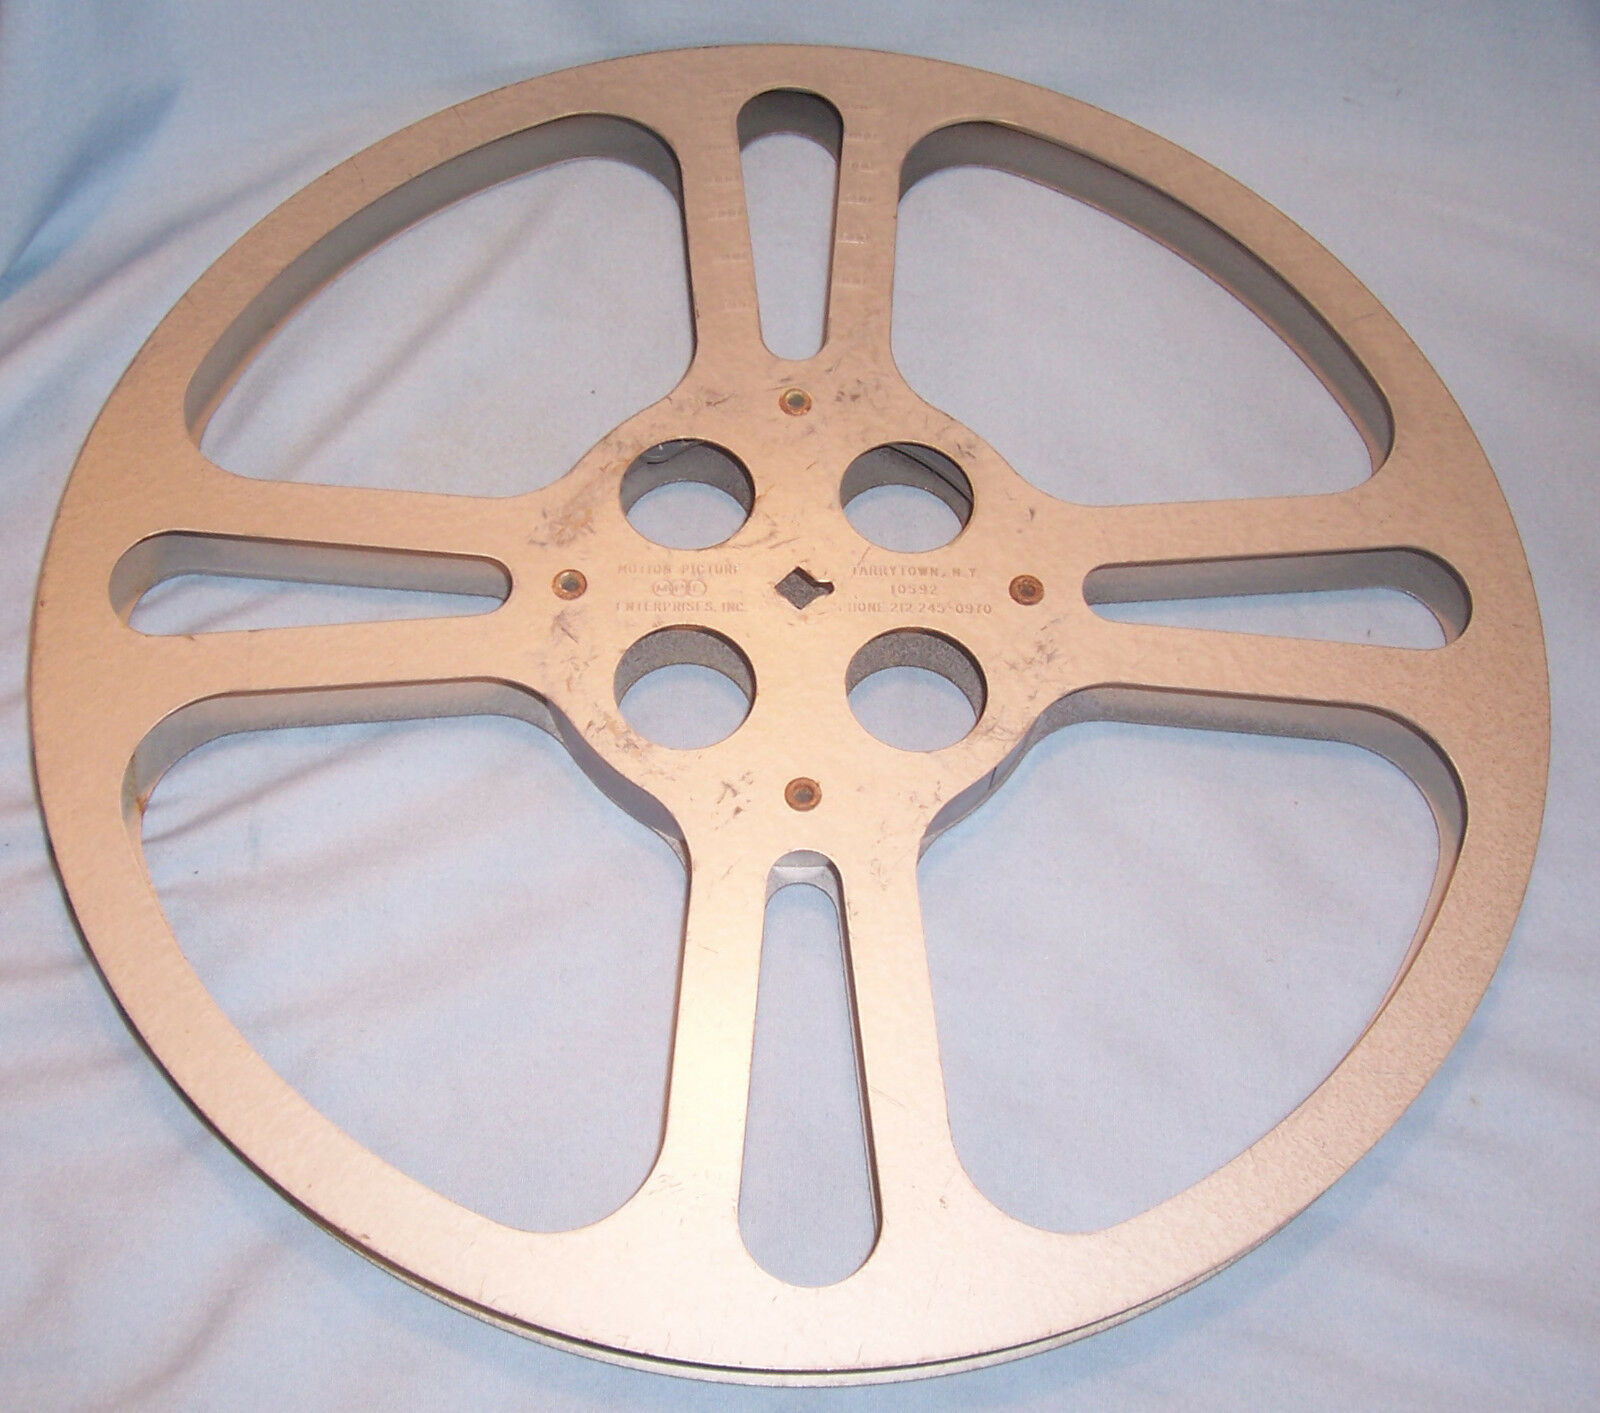 16MM 800 ft MPE Motion Picture Film Camera Movie Projector Take Up Reel Spool